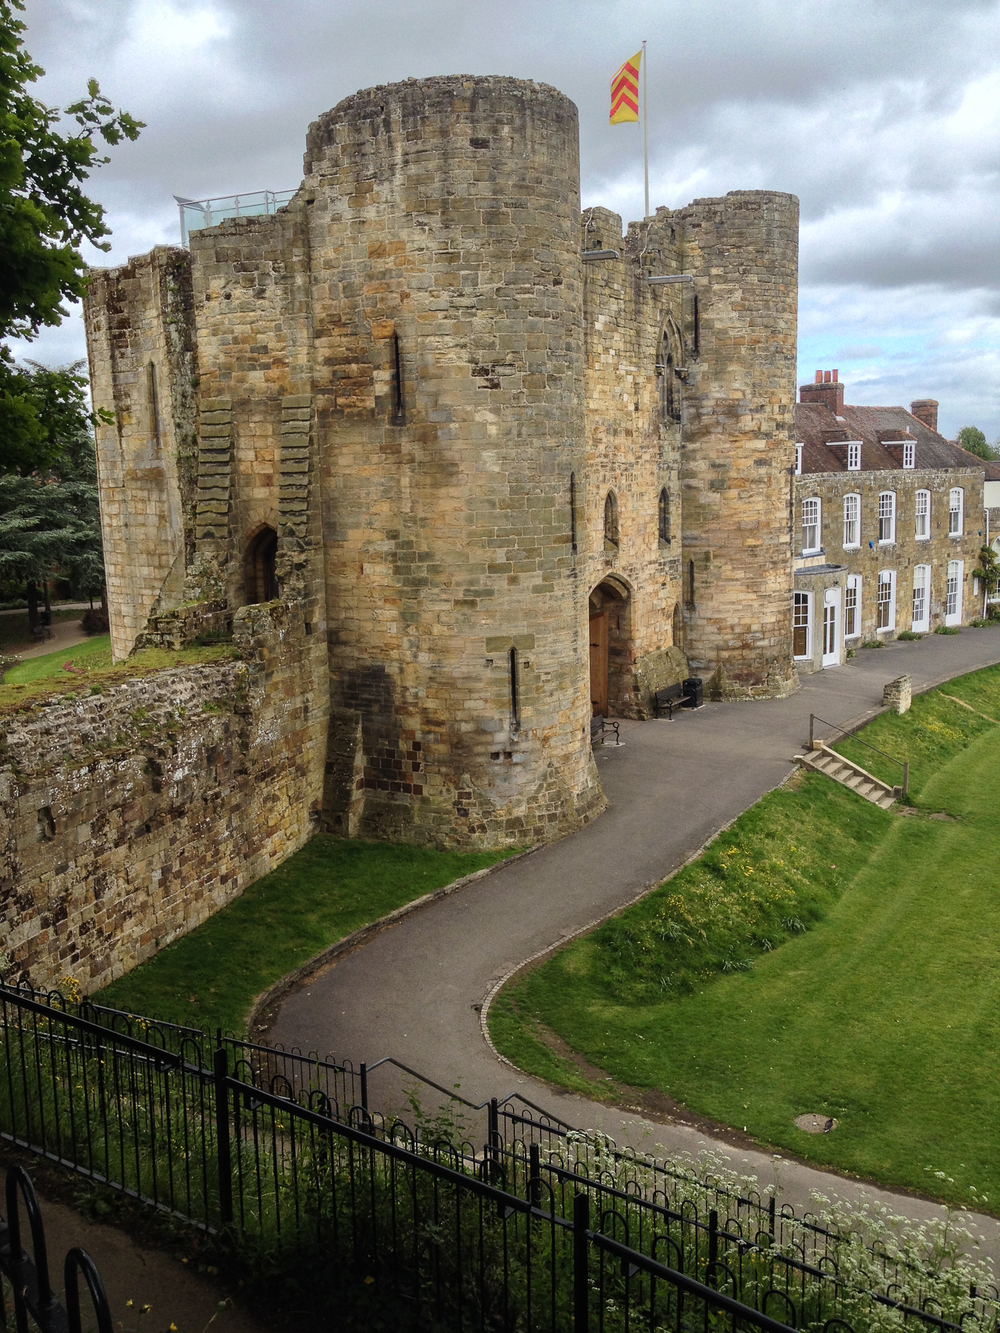 The remains of the castle in Tonbridge